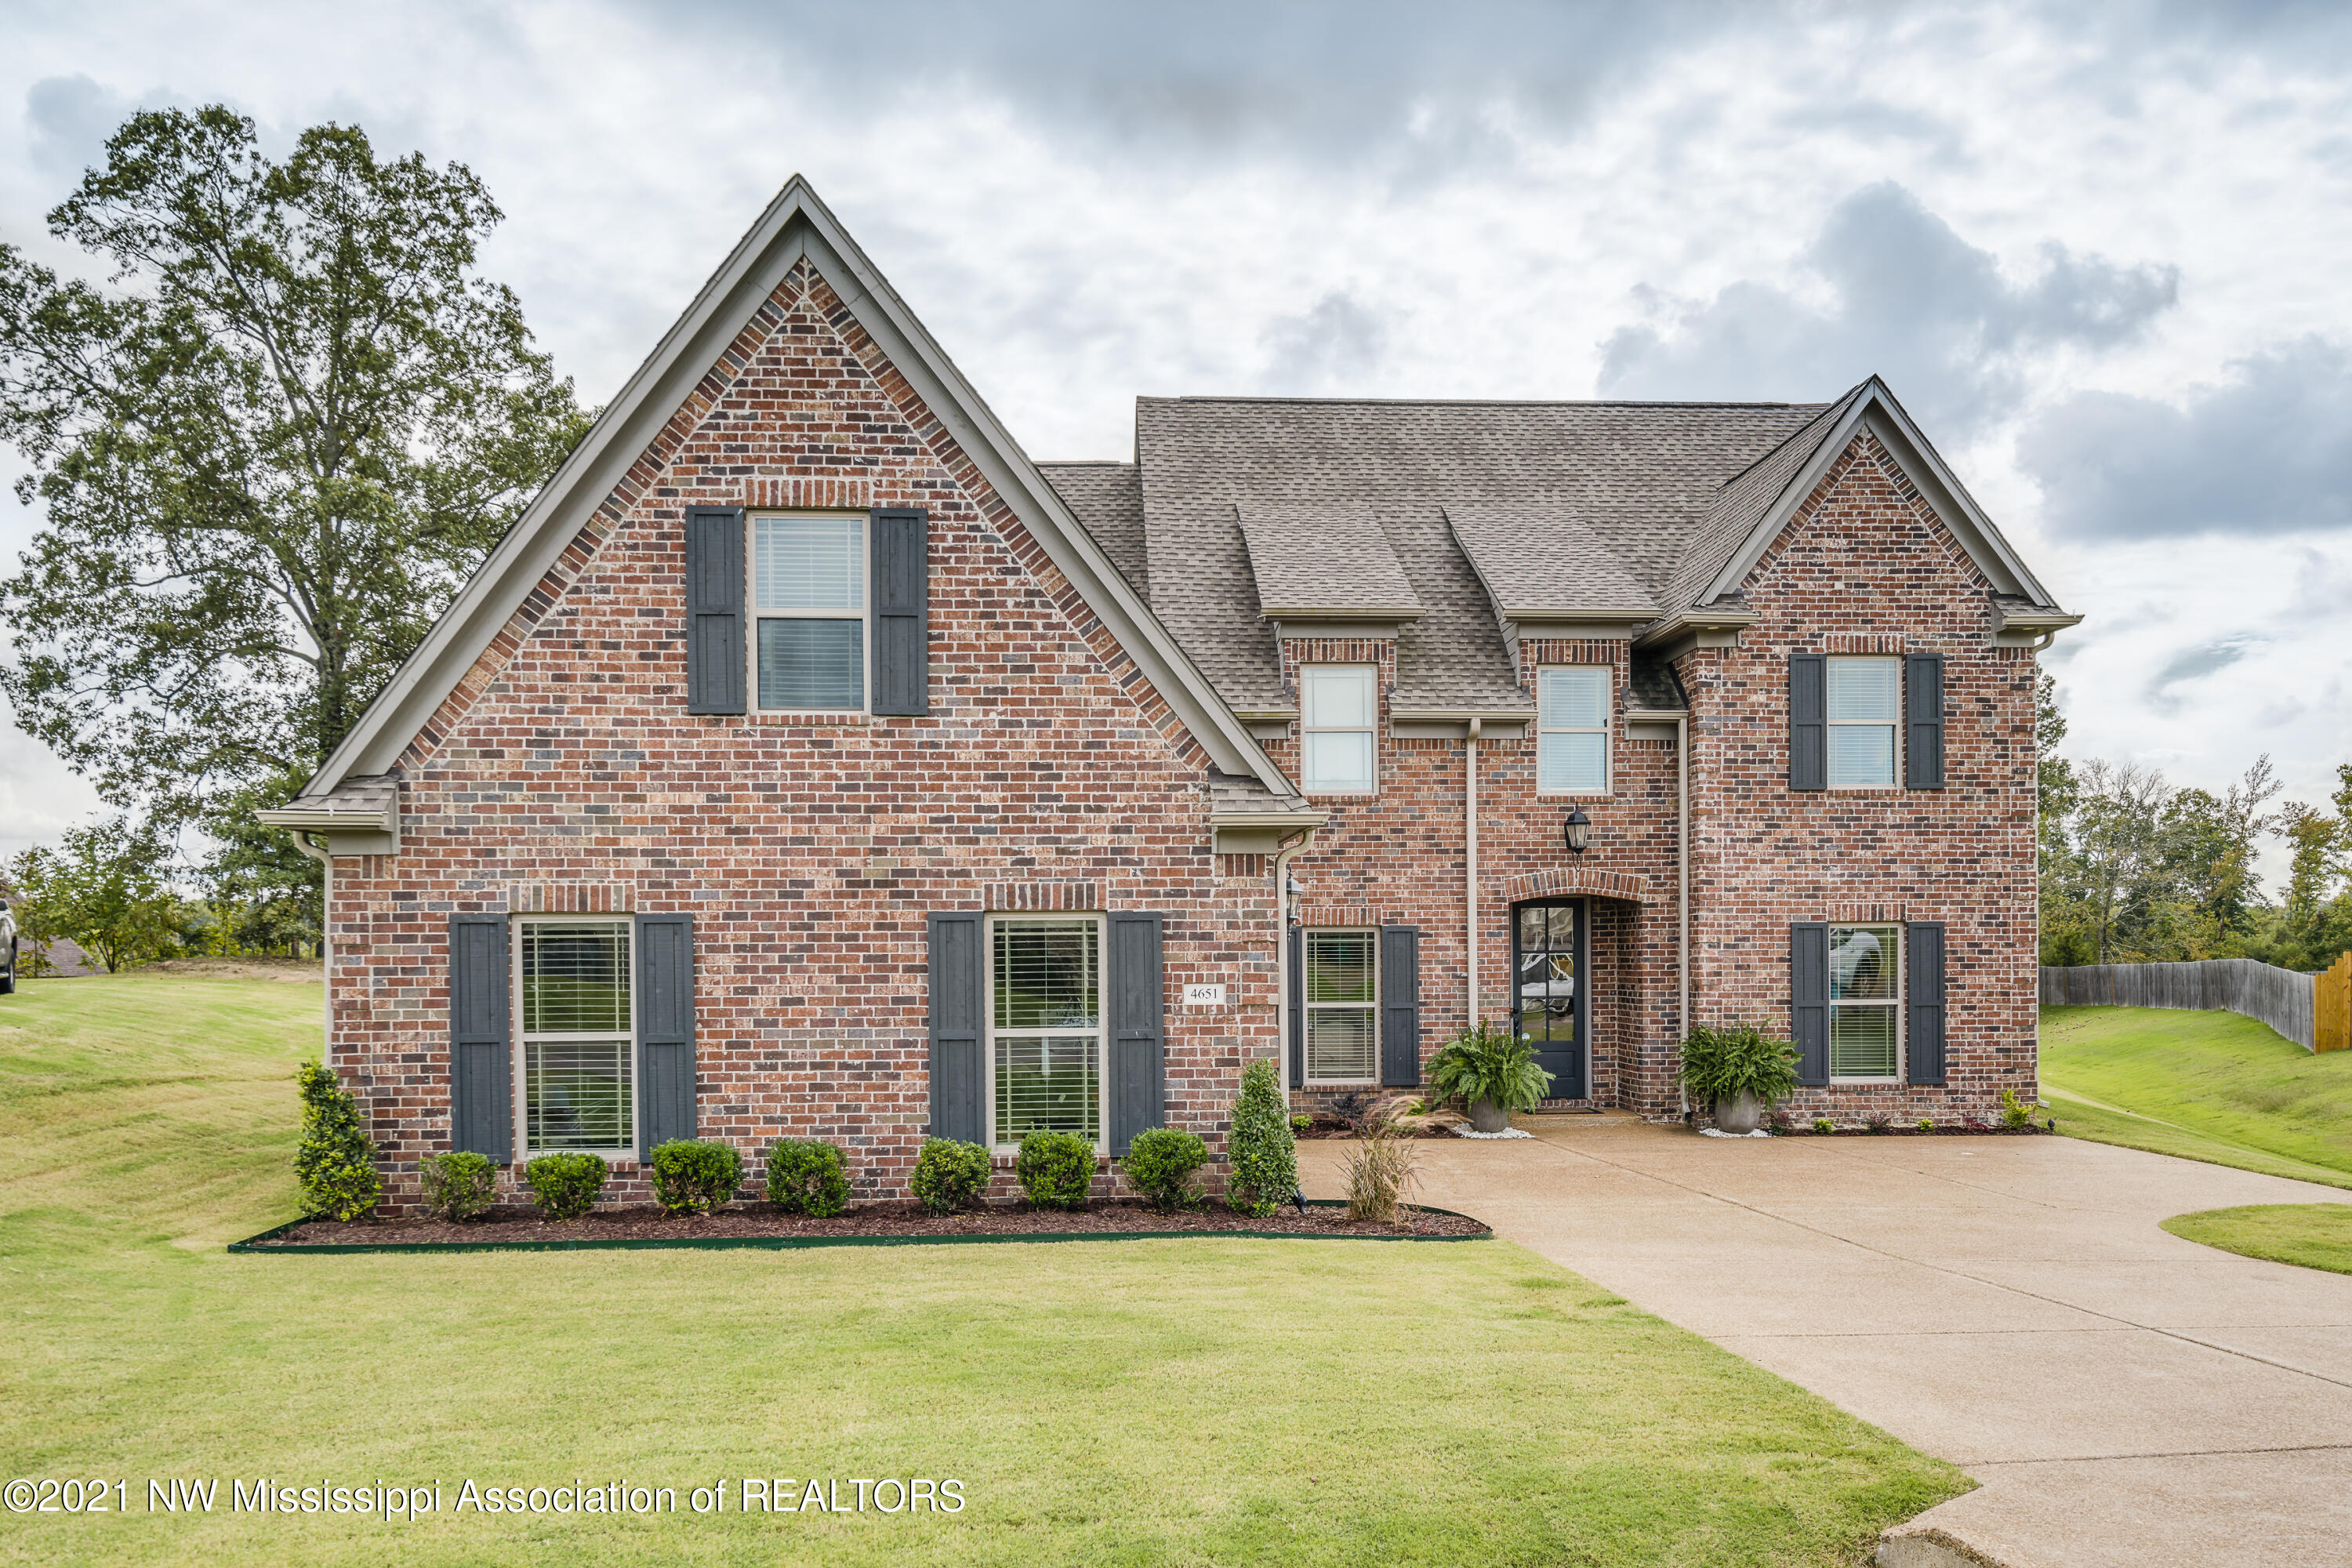 Like NEW ~ ~ Built in 2018 by DeSoto's Best Pintail Construction ~ Adorable 5 Bedroom Open and Split plan on a 3/4 Acre Cove Lot in #1 Lewisburg ~ FULL HOME AUTOMATION (Smart Home) with 2 Bedrooms, 2 Baths on First Floor; 2 Bedrooms, 2 Baths, Bonus (or BR 5) on Second Floor ~ Beautiful Nail-Down Wood Floors throughout the entire first floor (including MBR and BR2) except for tile in baths/laundry ~ Vaulted Great Room with Brick FP to ceiling surrounded by Built-In Bookshelves/cabinets, Cedar Mantle, and a triple window looking out on the Covered Porch and Huge Back Yard (big enough for a pool) ~ Open Kitchen with Center Island, Upgraded Granite, Farm Sink, Double Convection Ovens, Samsung Fridge, Custom Decorative Vent Hood Gas Cook-Top, Pot-Filler, Under cabinet lighting, walk-in pantry and a large Breakfast Area with Built-In Granite Desk with upper/lower cabinets ~ Master on the rear with wood floors, nook, recessed lighting, 2 windows, and a spa-like bath with Soaker Tub, Dual Shower Heads, 2 Granite Vanities, Make-Up Station and a large walk-in closet ~ Bedroom 2 is on opposite side of house on the first floor with wood floors and next to Bath 2 with granite vanity and tile shower ~ Mud Area with cubbies just off the Garage Entry and Laundry with built-in cabinets, hanging rod, and granite folding counter ~ Upstairs find large Bedrooms 3, 4 and 2 full bathrooms (Bath 4 is private to Bedroom 4) plus a Multi-Purpose Bonus Room ~ Outside find a great covered porch with Ceiling Fan, Outdoor TV overlooking a large back yard ~ Additional Features:  Shaker Doors, Wood-Tread Stairs, Tankless Water Heater, Walk-In floored attic / expandable area, Low E Vinyl Windows, Smooth Ceilings, Blinds, All Bedrooms feature: Ceiling Fans and Walk-In Closets, Crown Molding on first floor, Custom Upgraded Lighting, Soft-Close Drawers, Power Blinds, Full Home Automation controls Lights, Lamps, 6 cameras, Exterior Security Lighting, Soffit Down Lights, 2 Thermostats, and 8 EcoBee Tempe